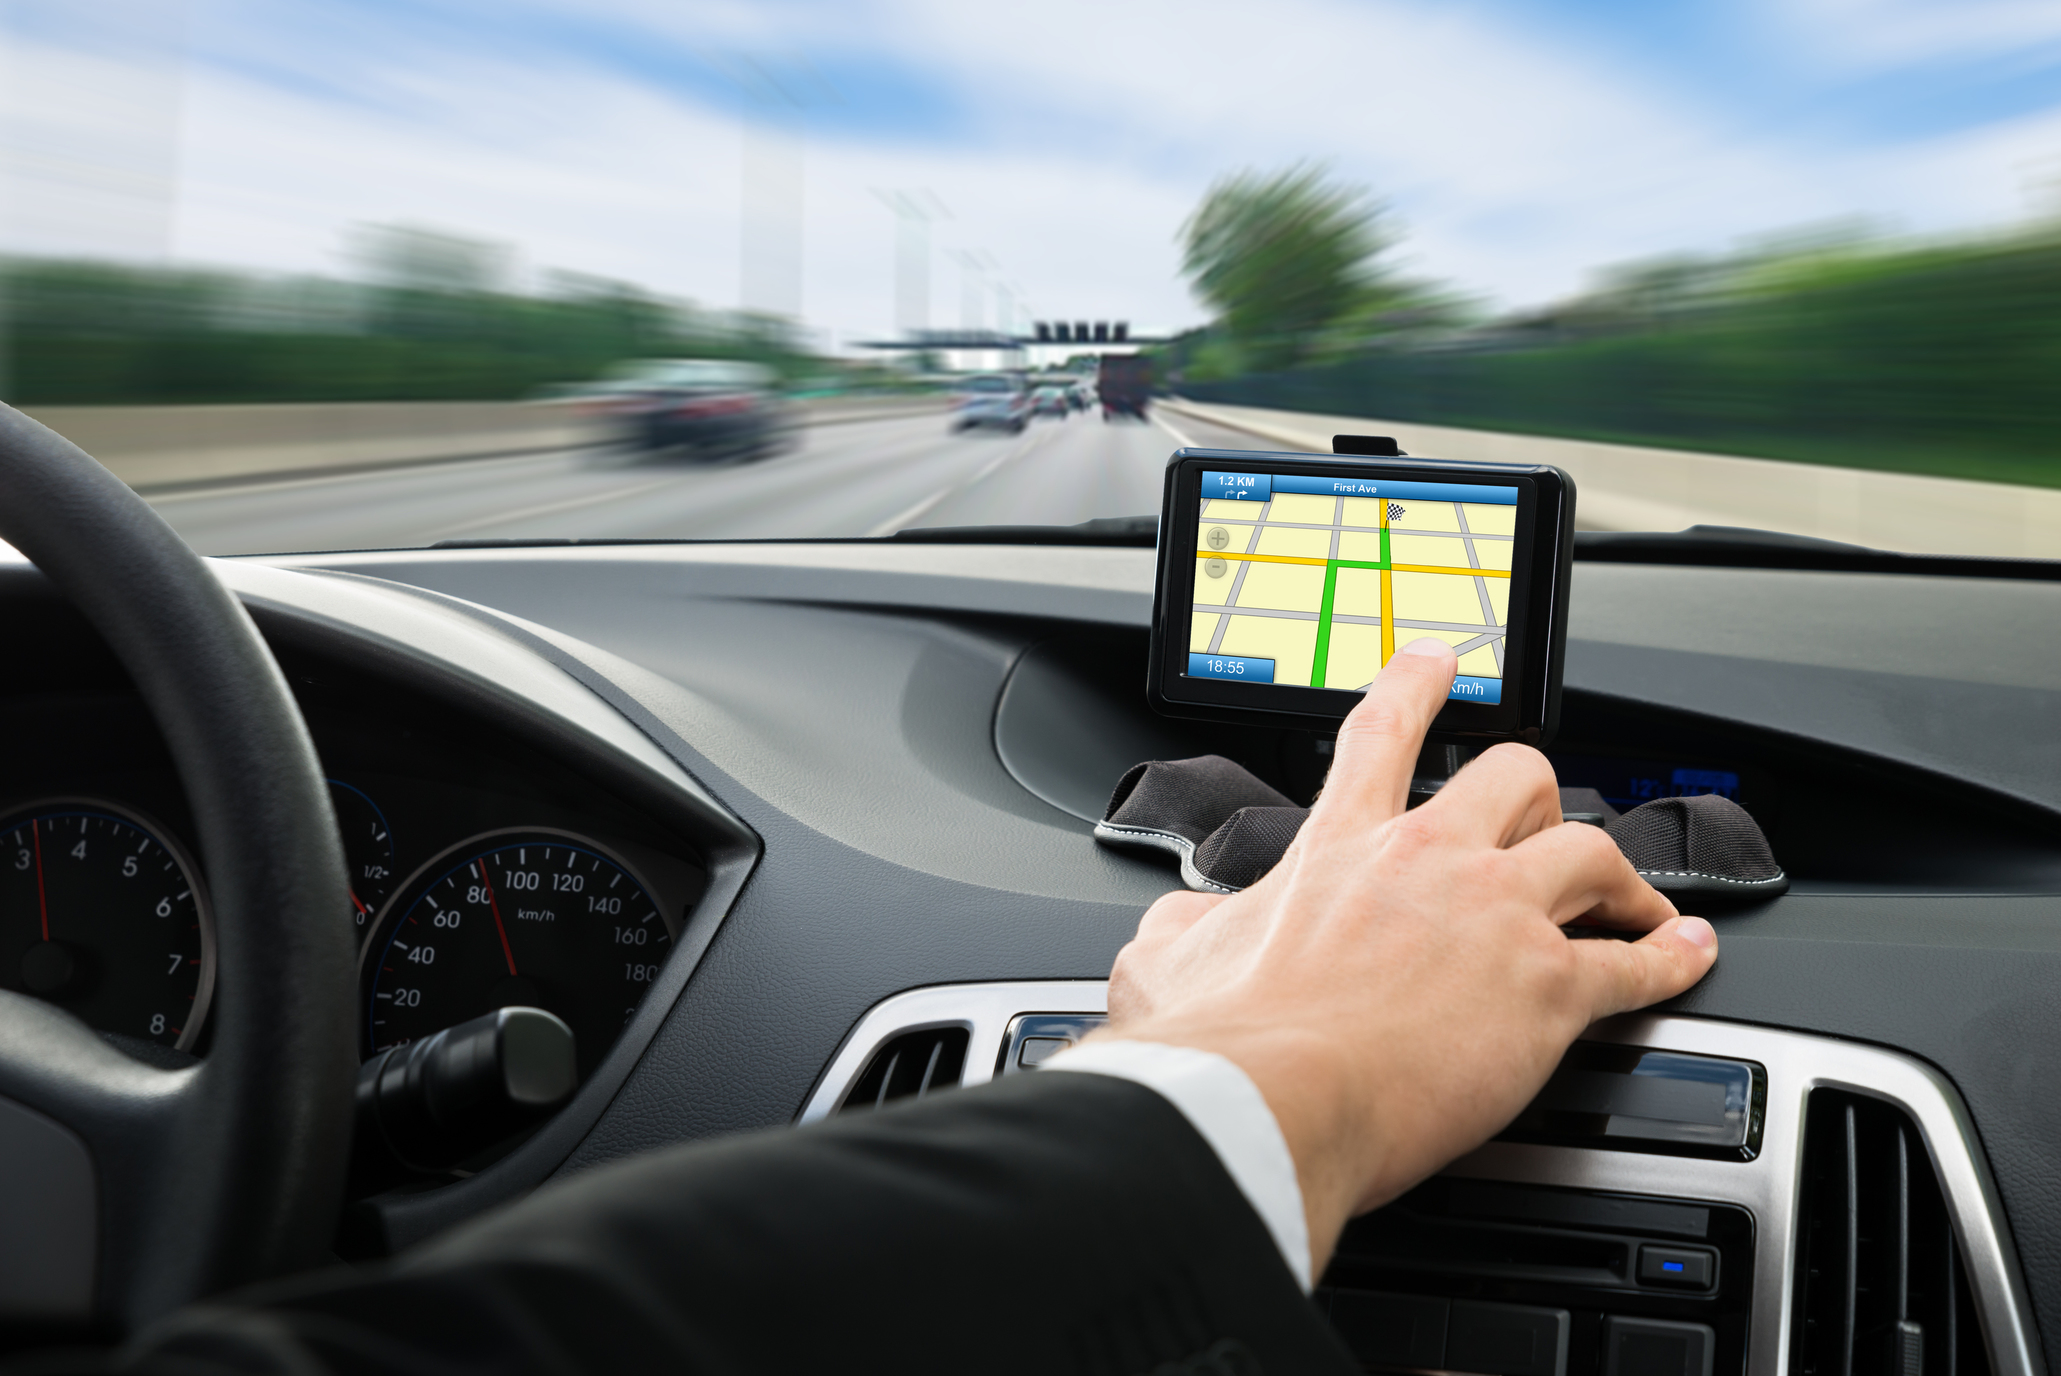 Gauging The Accuracy Of GPS Speed On Cars